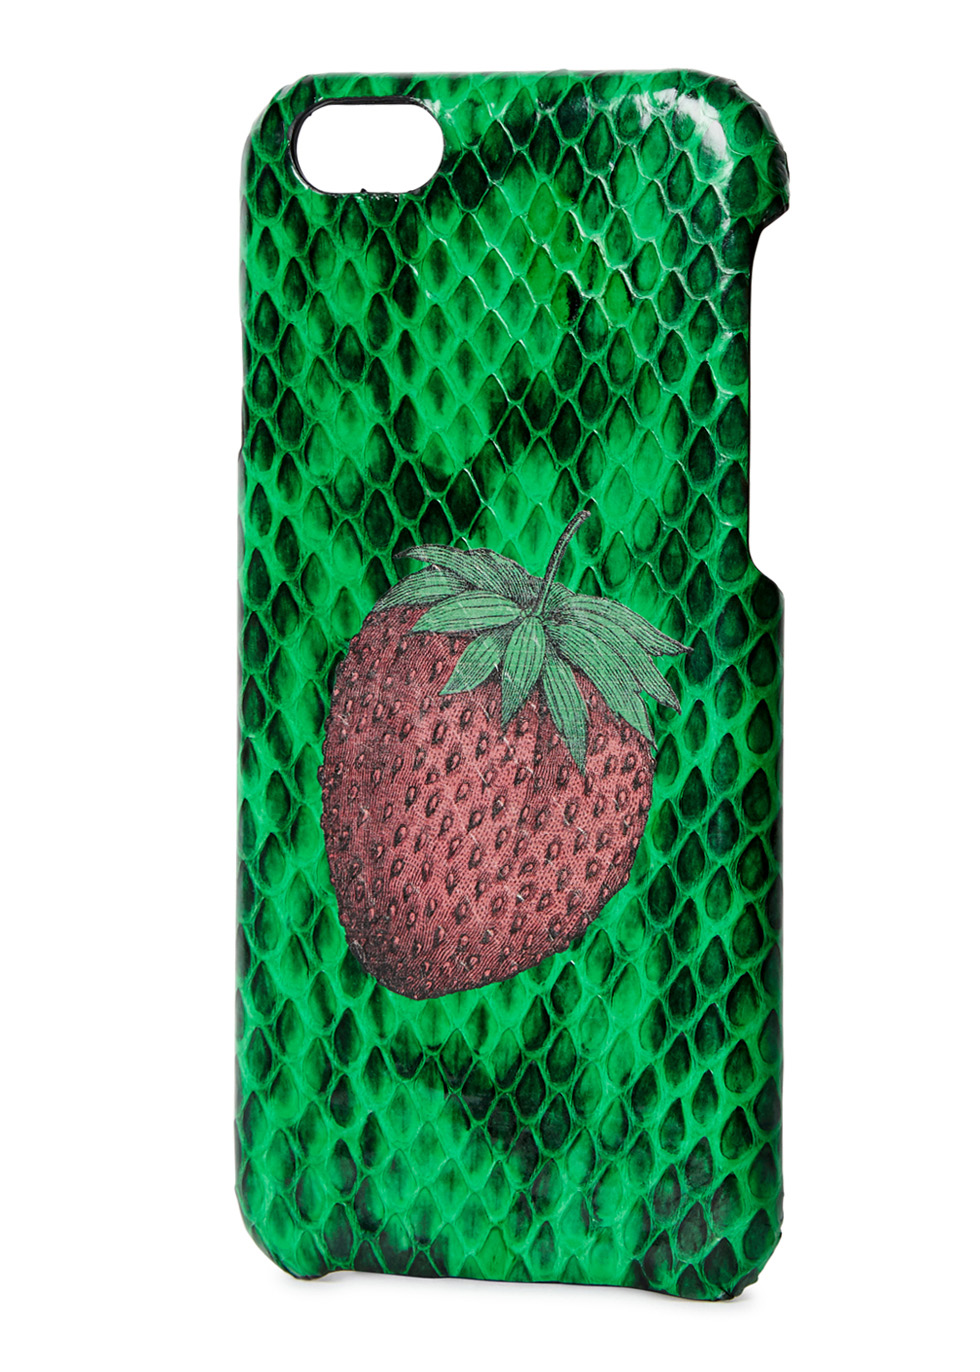 Strawberry-print watersnake iPhone 6/6S case - The Case Factory